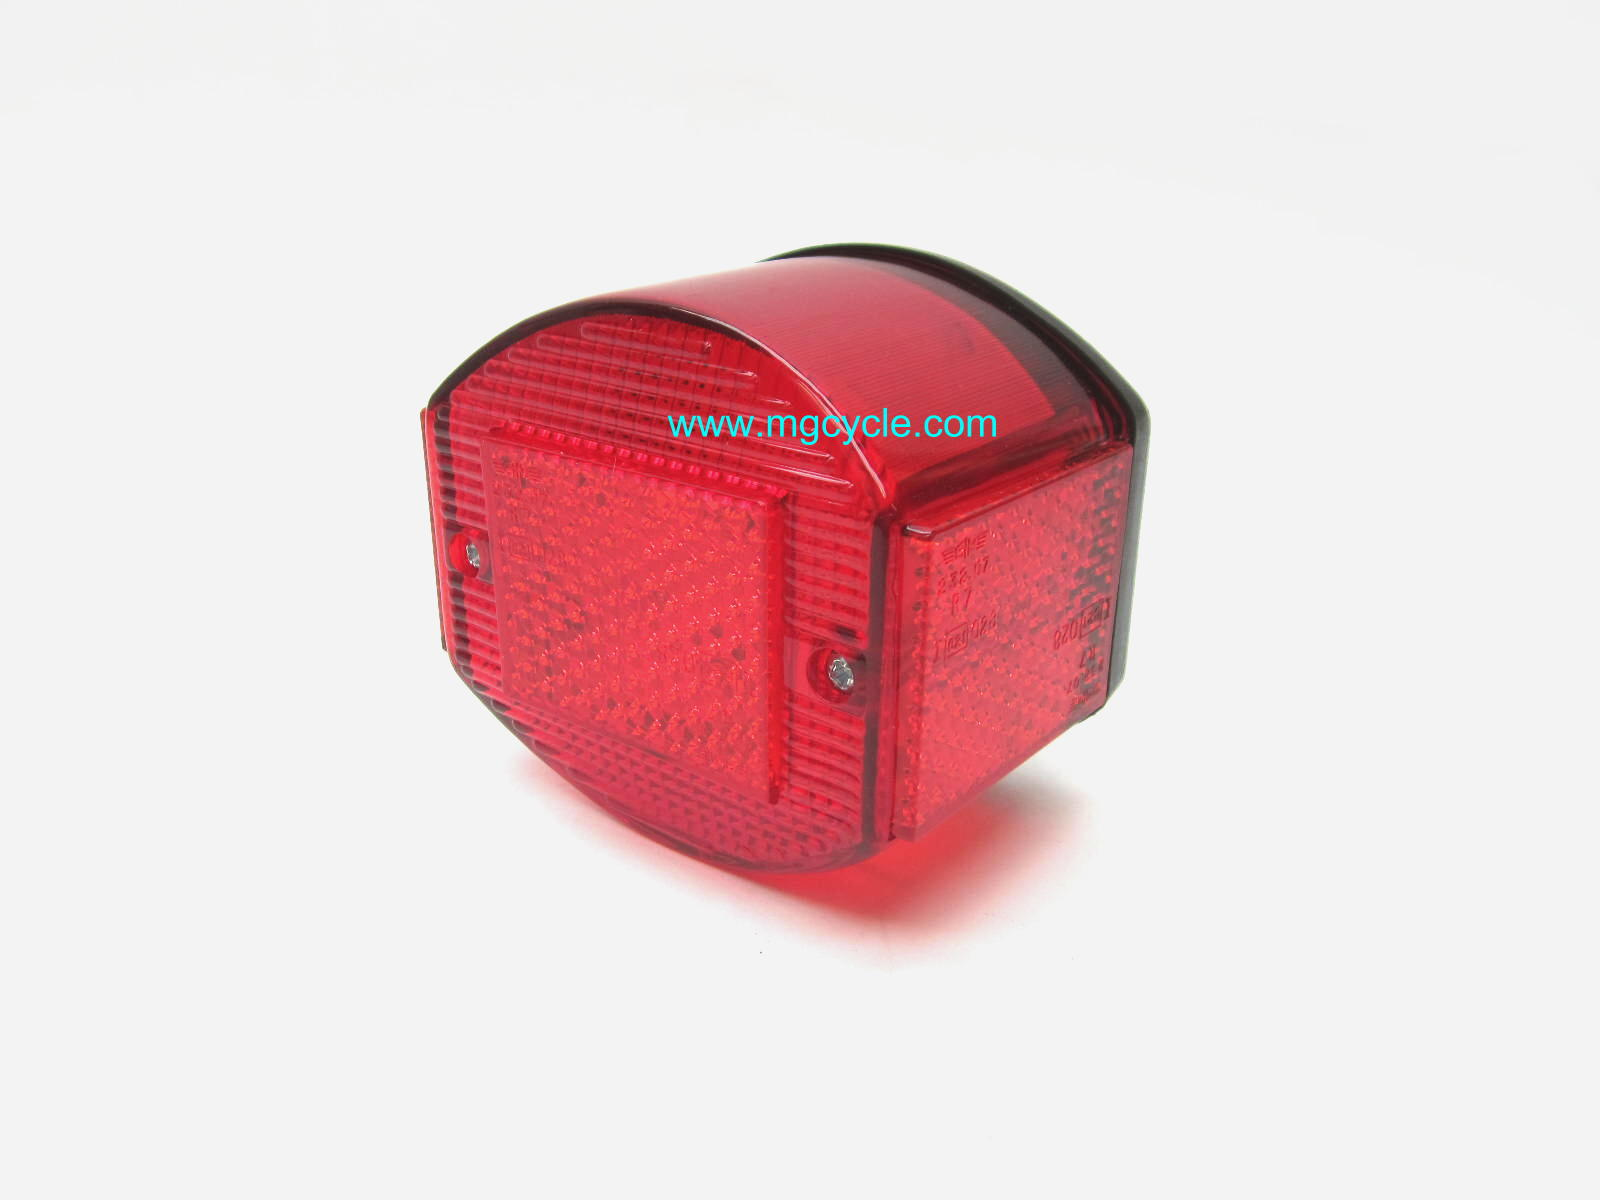 Economy CEV replica tail light unit, black base